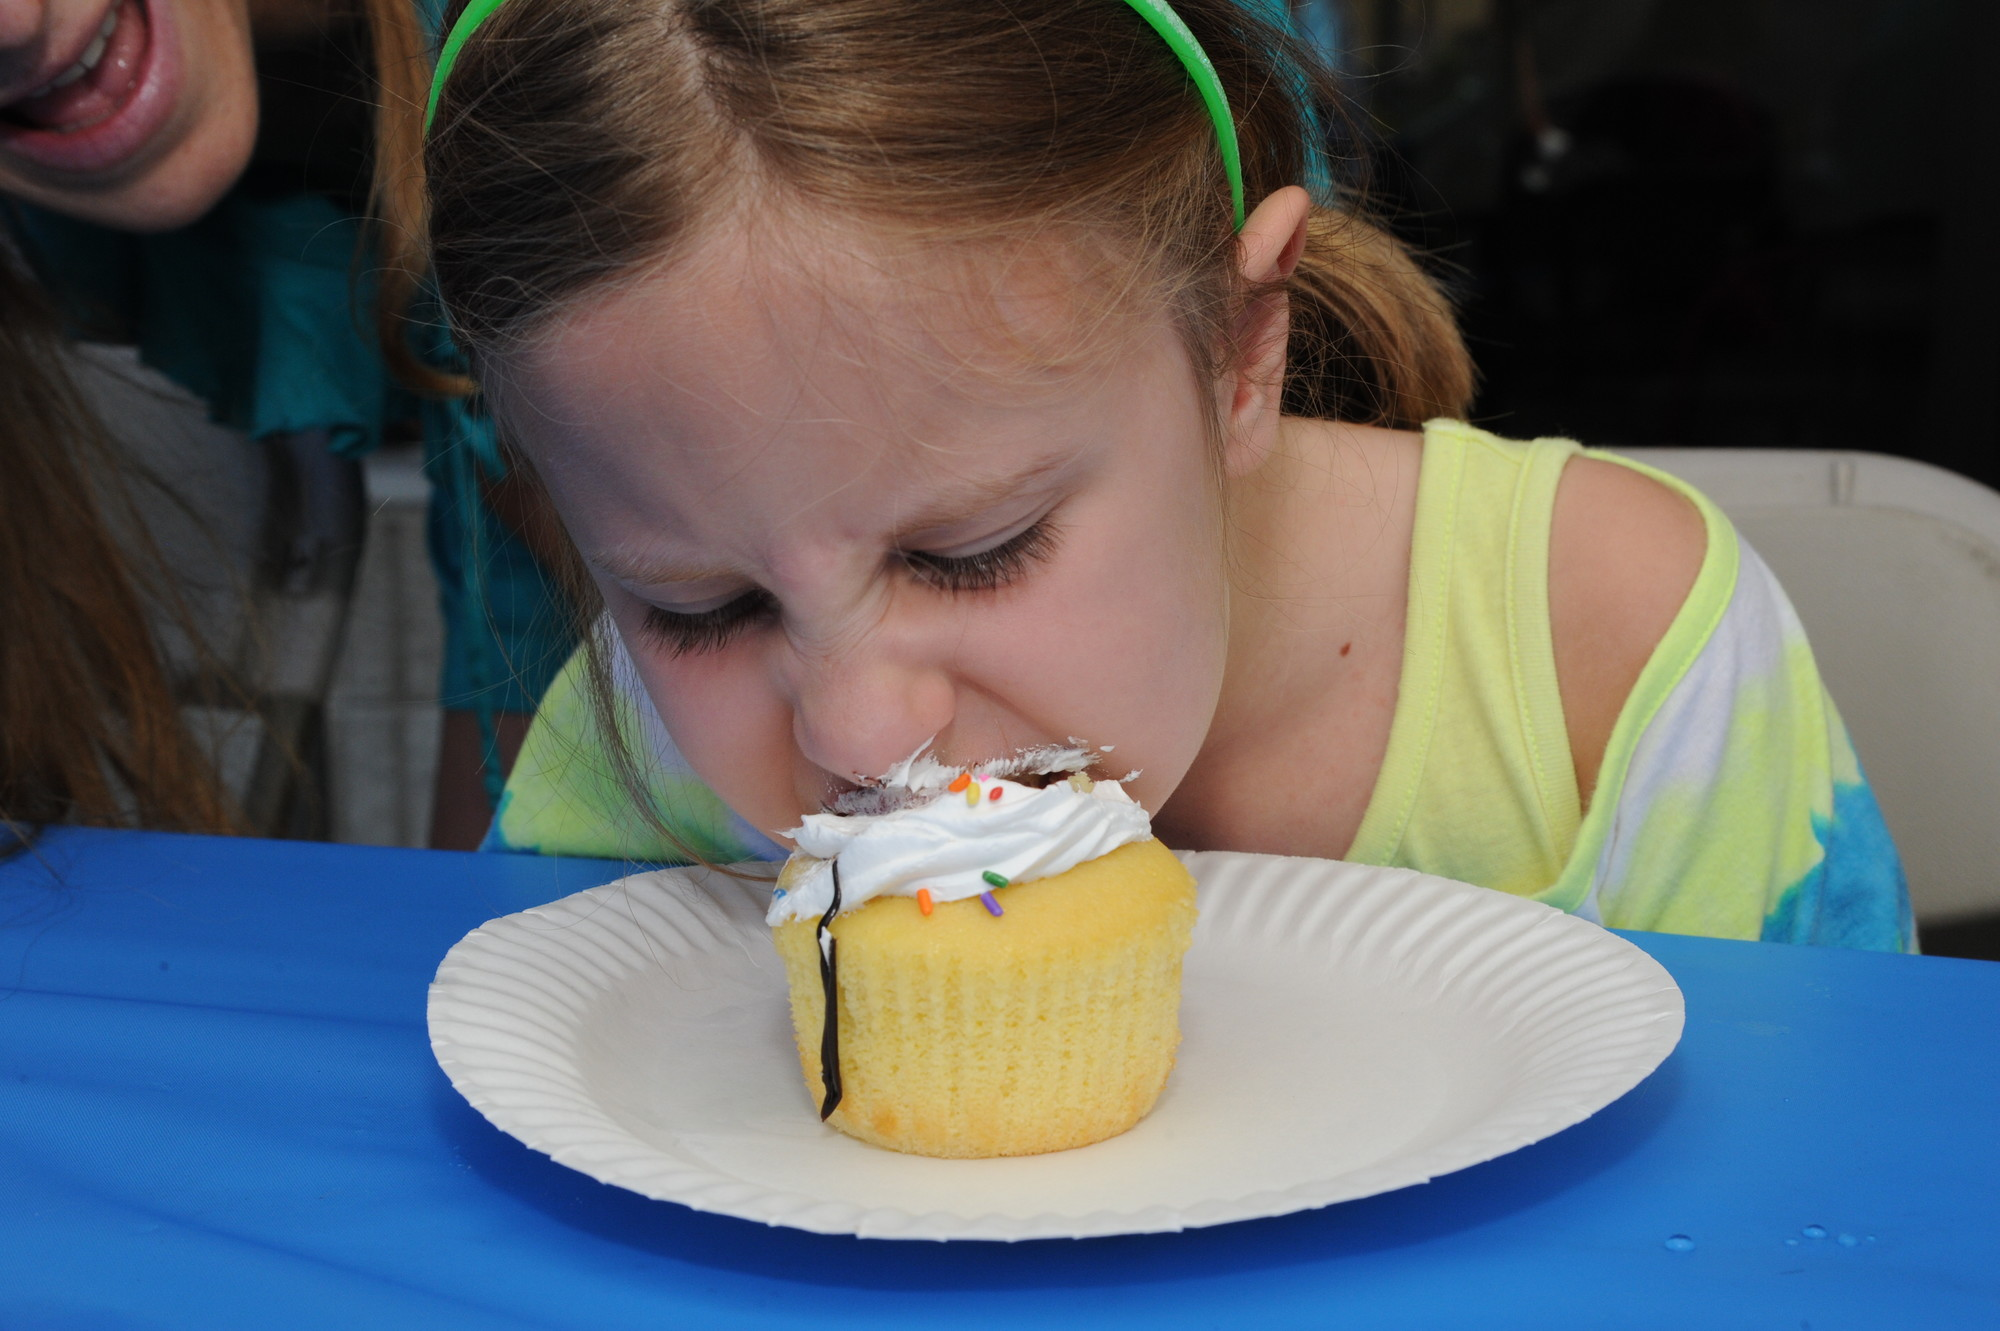 Emma Stevens, 5, dug into a tasty confection.